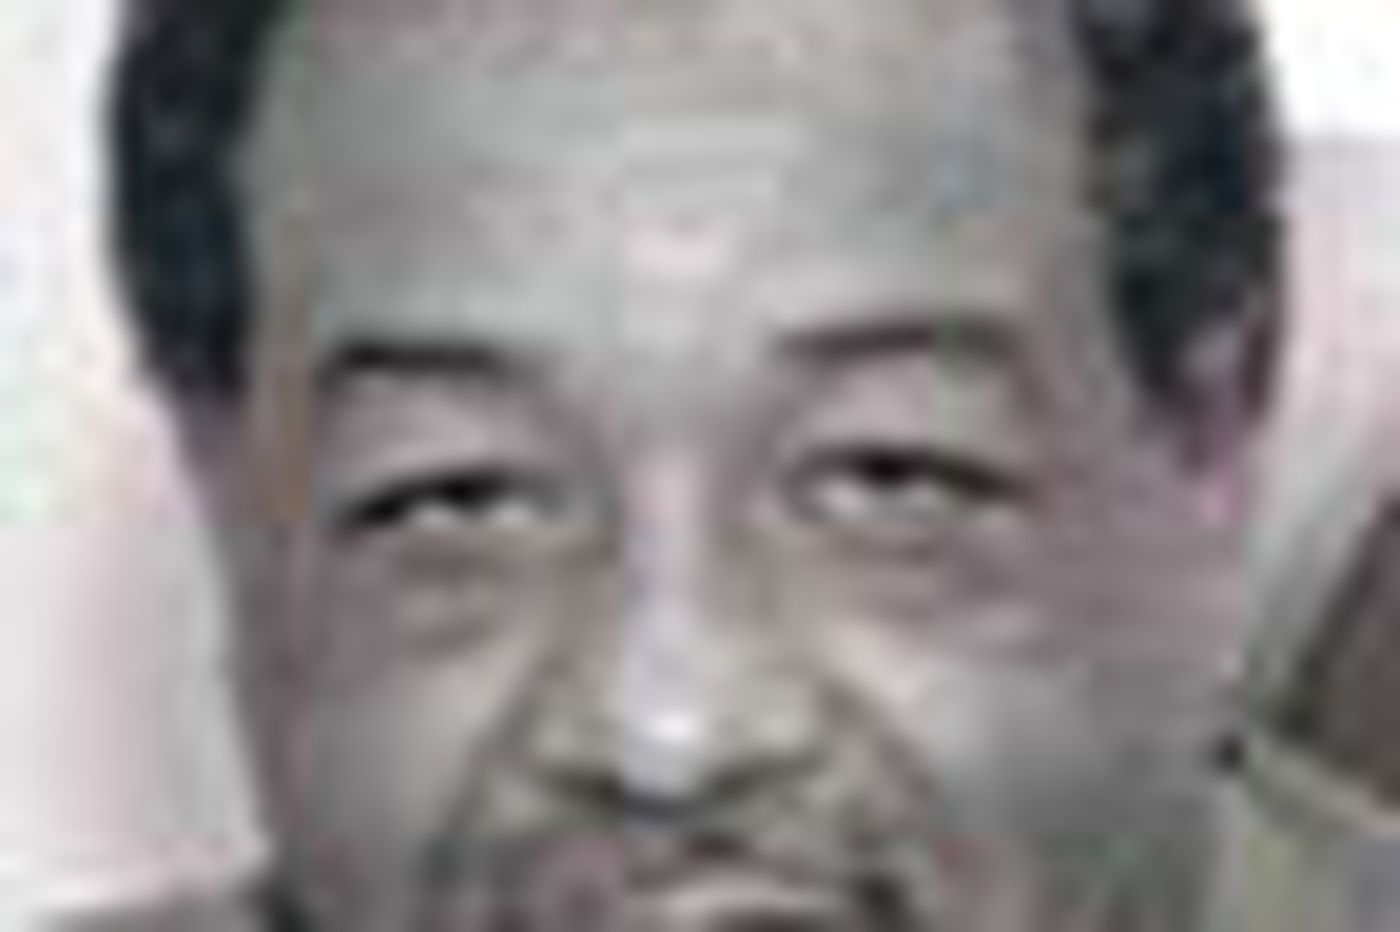 Virgil Magee Jr., 64, Camden dropout-prevention coordinator